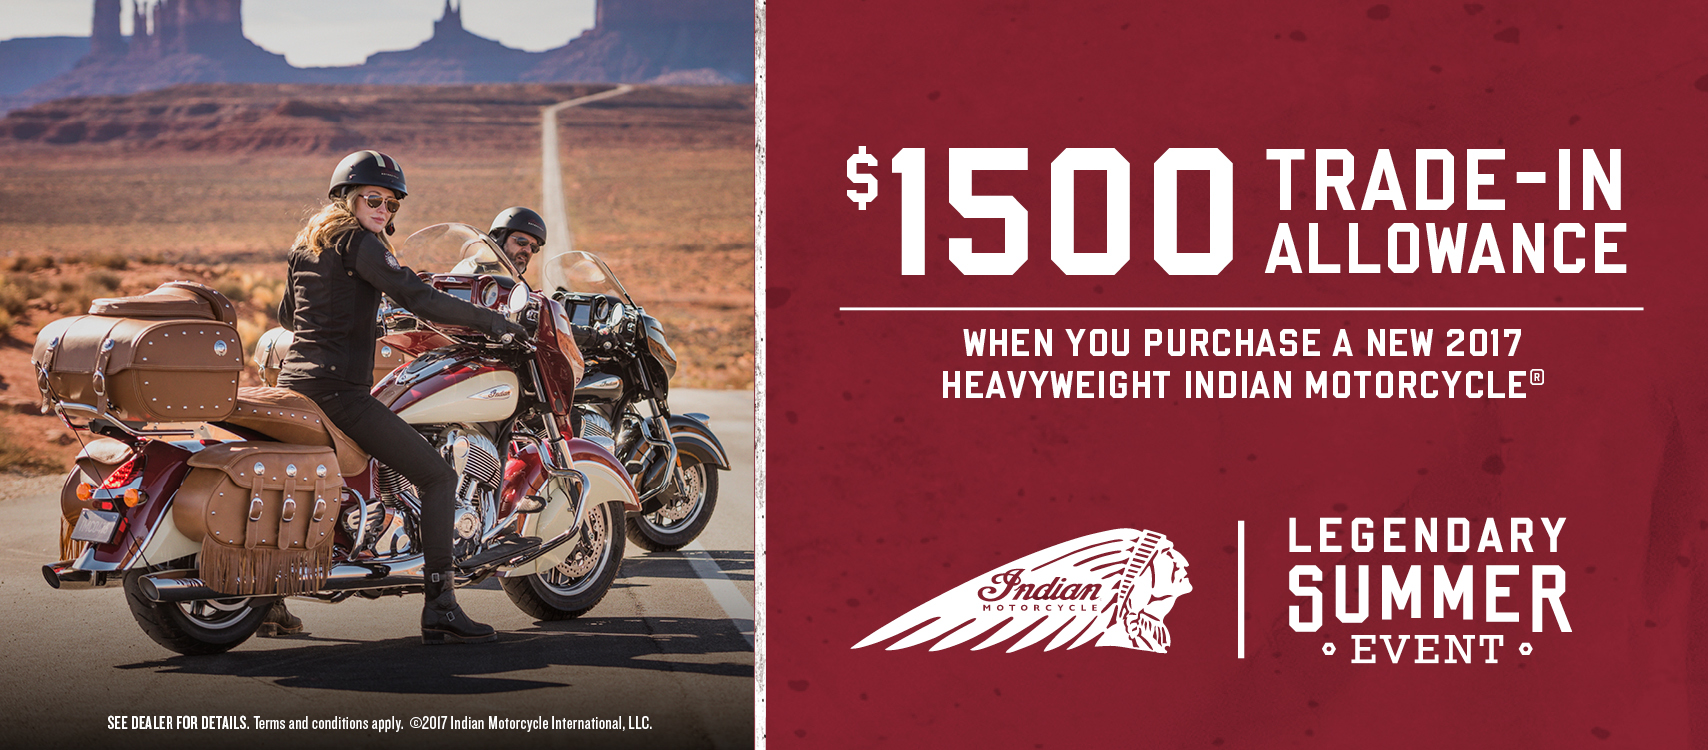 When you purchase a new 2017 heavyweight Indian Motorcycle, you get $1,500 trade-in allowance. Terms and conditions apply.